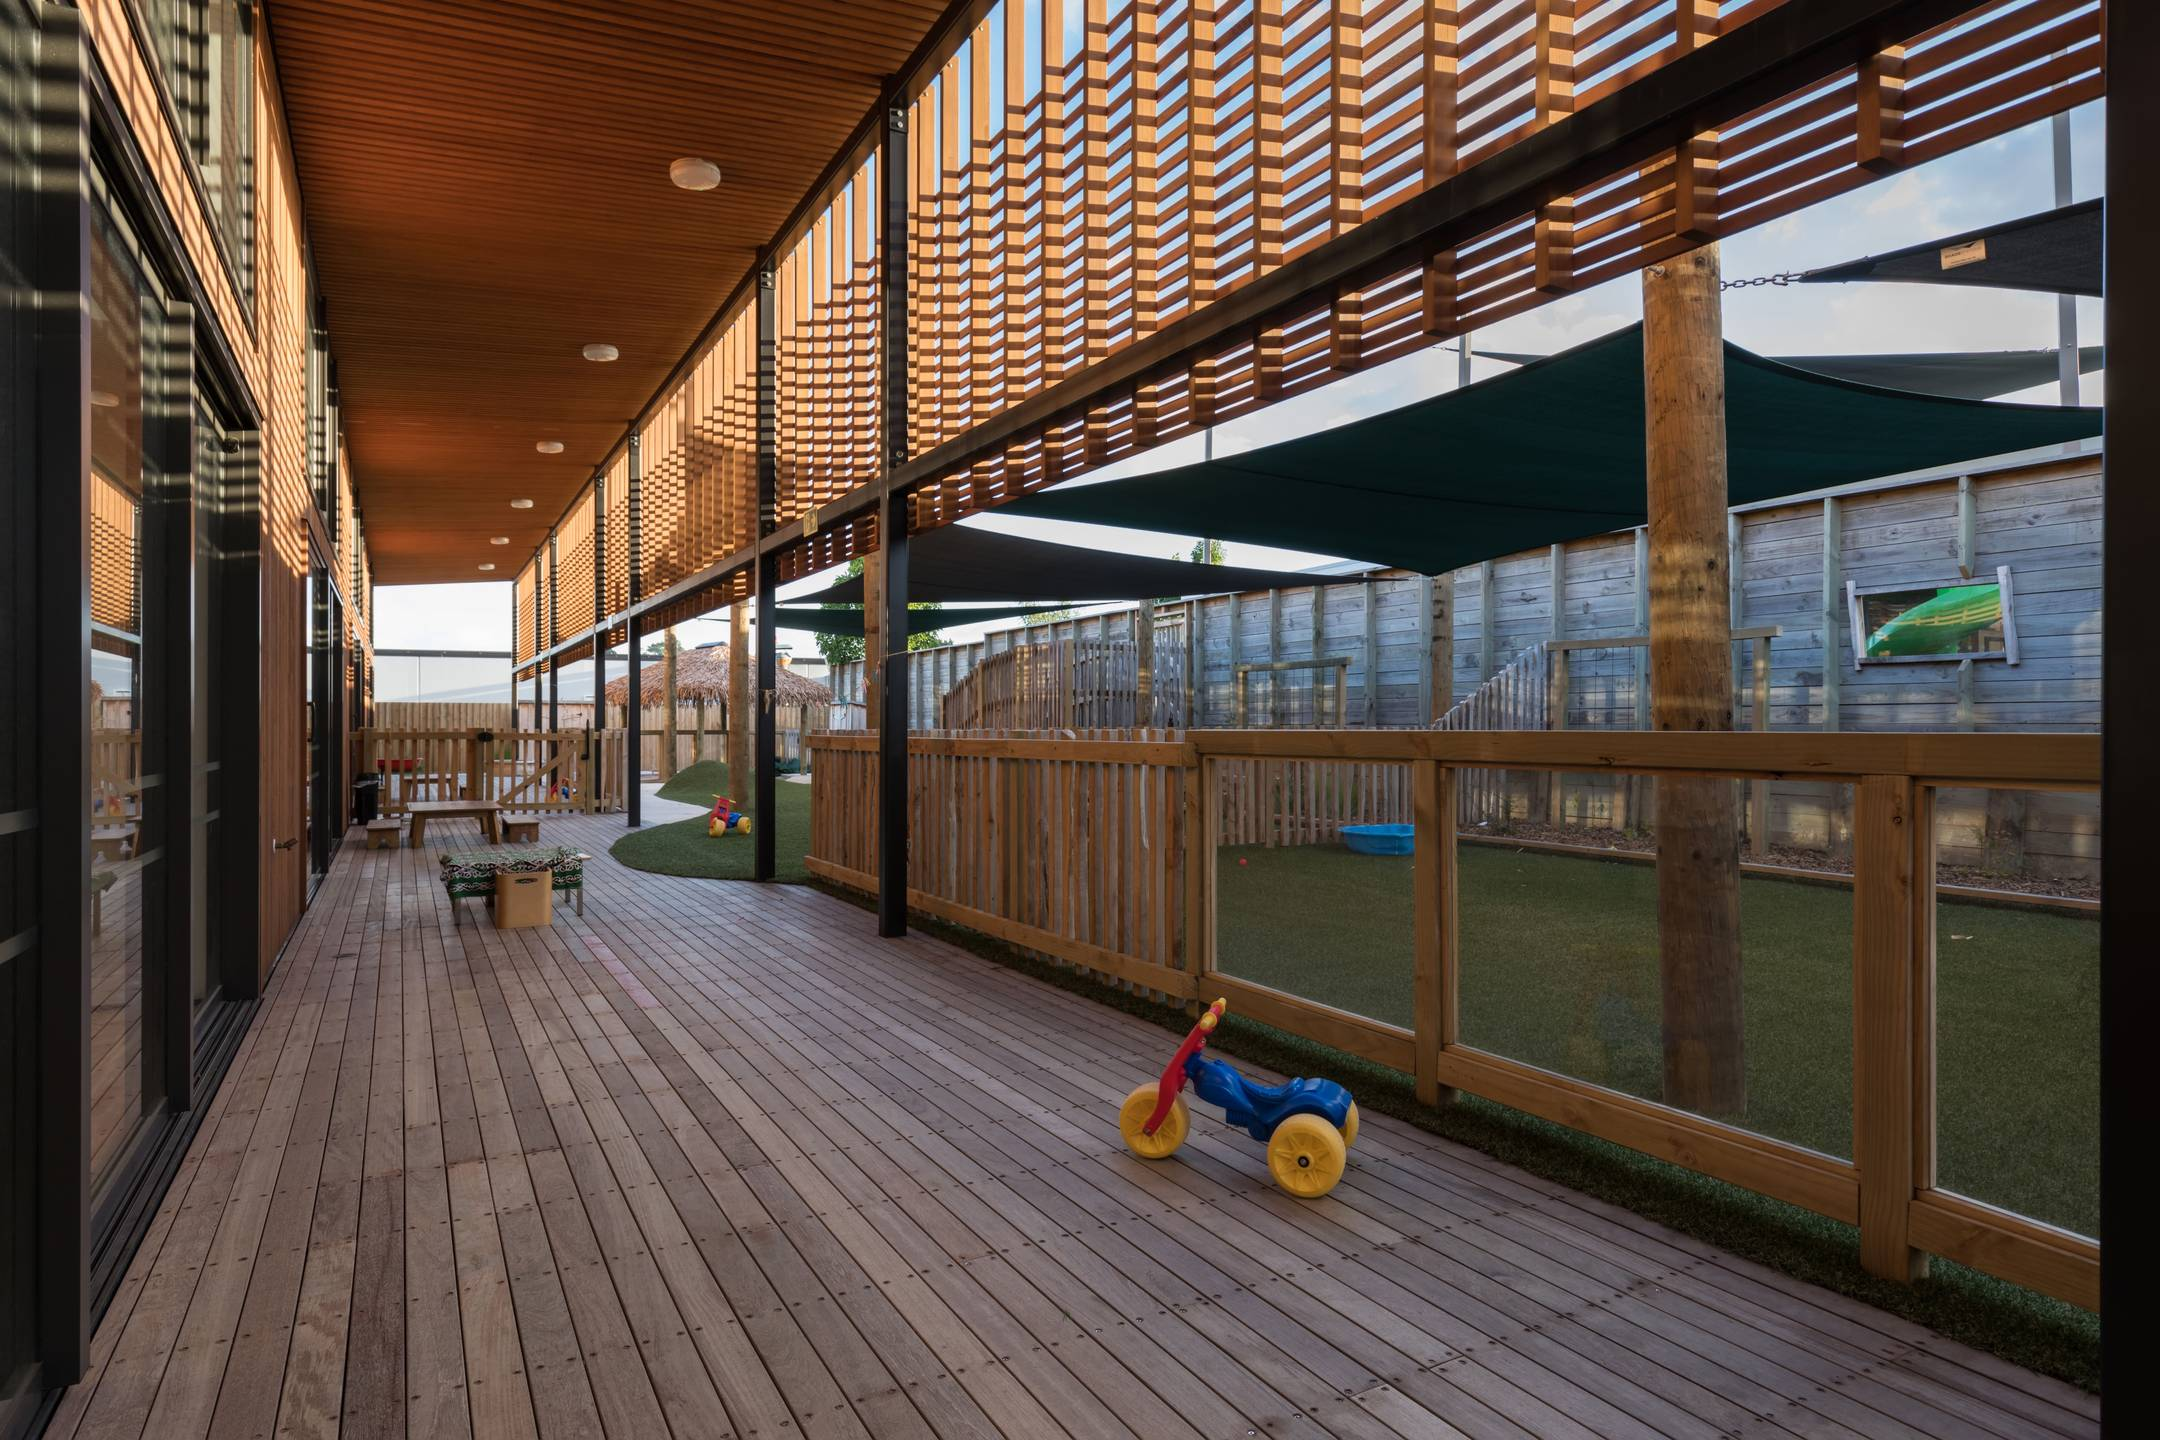 Oracle Childcare by Herbst Maxcey Metropolitan Architects